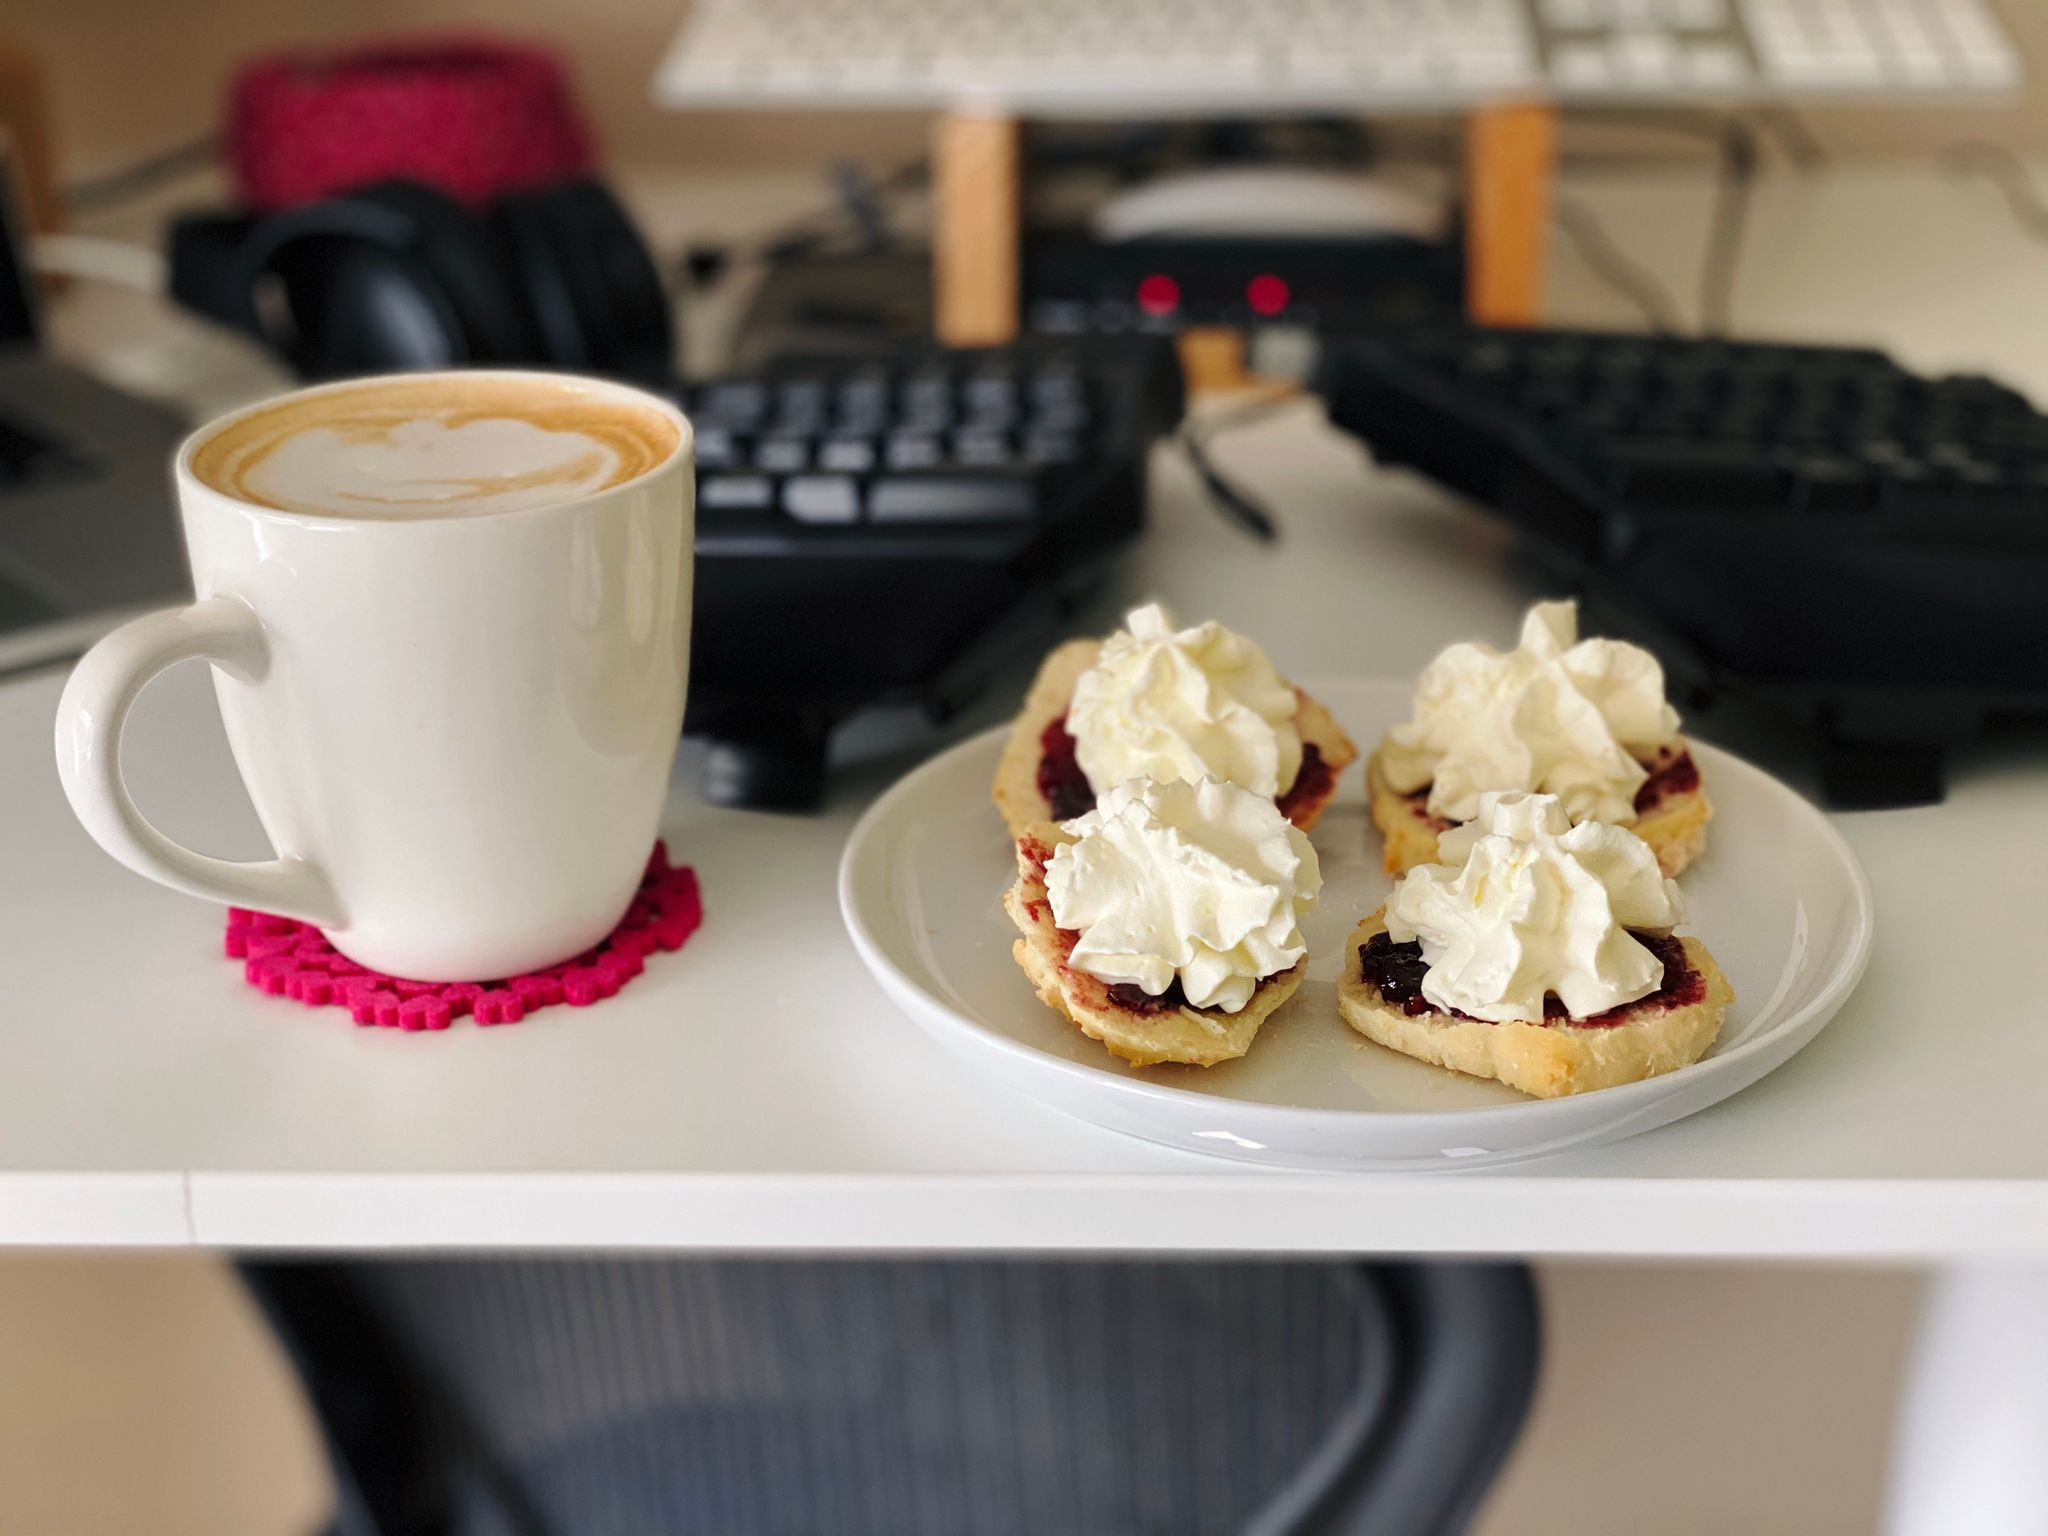 A photo of two scones sliced in half with jam and whipped cream on top, sitting on a plate next to a mug of coffee.